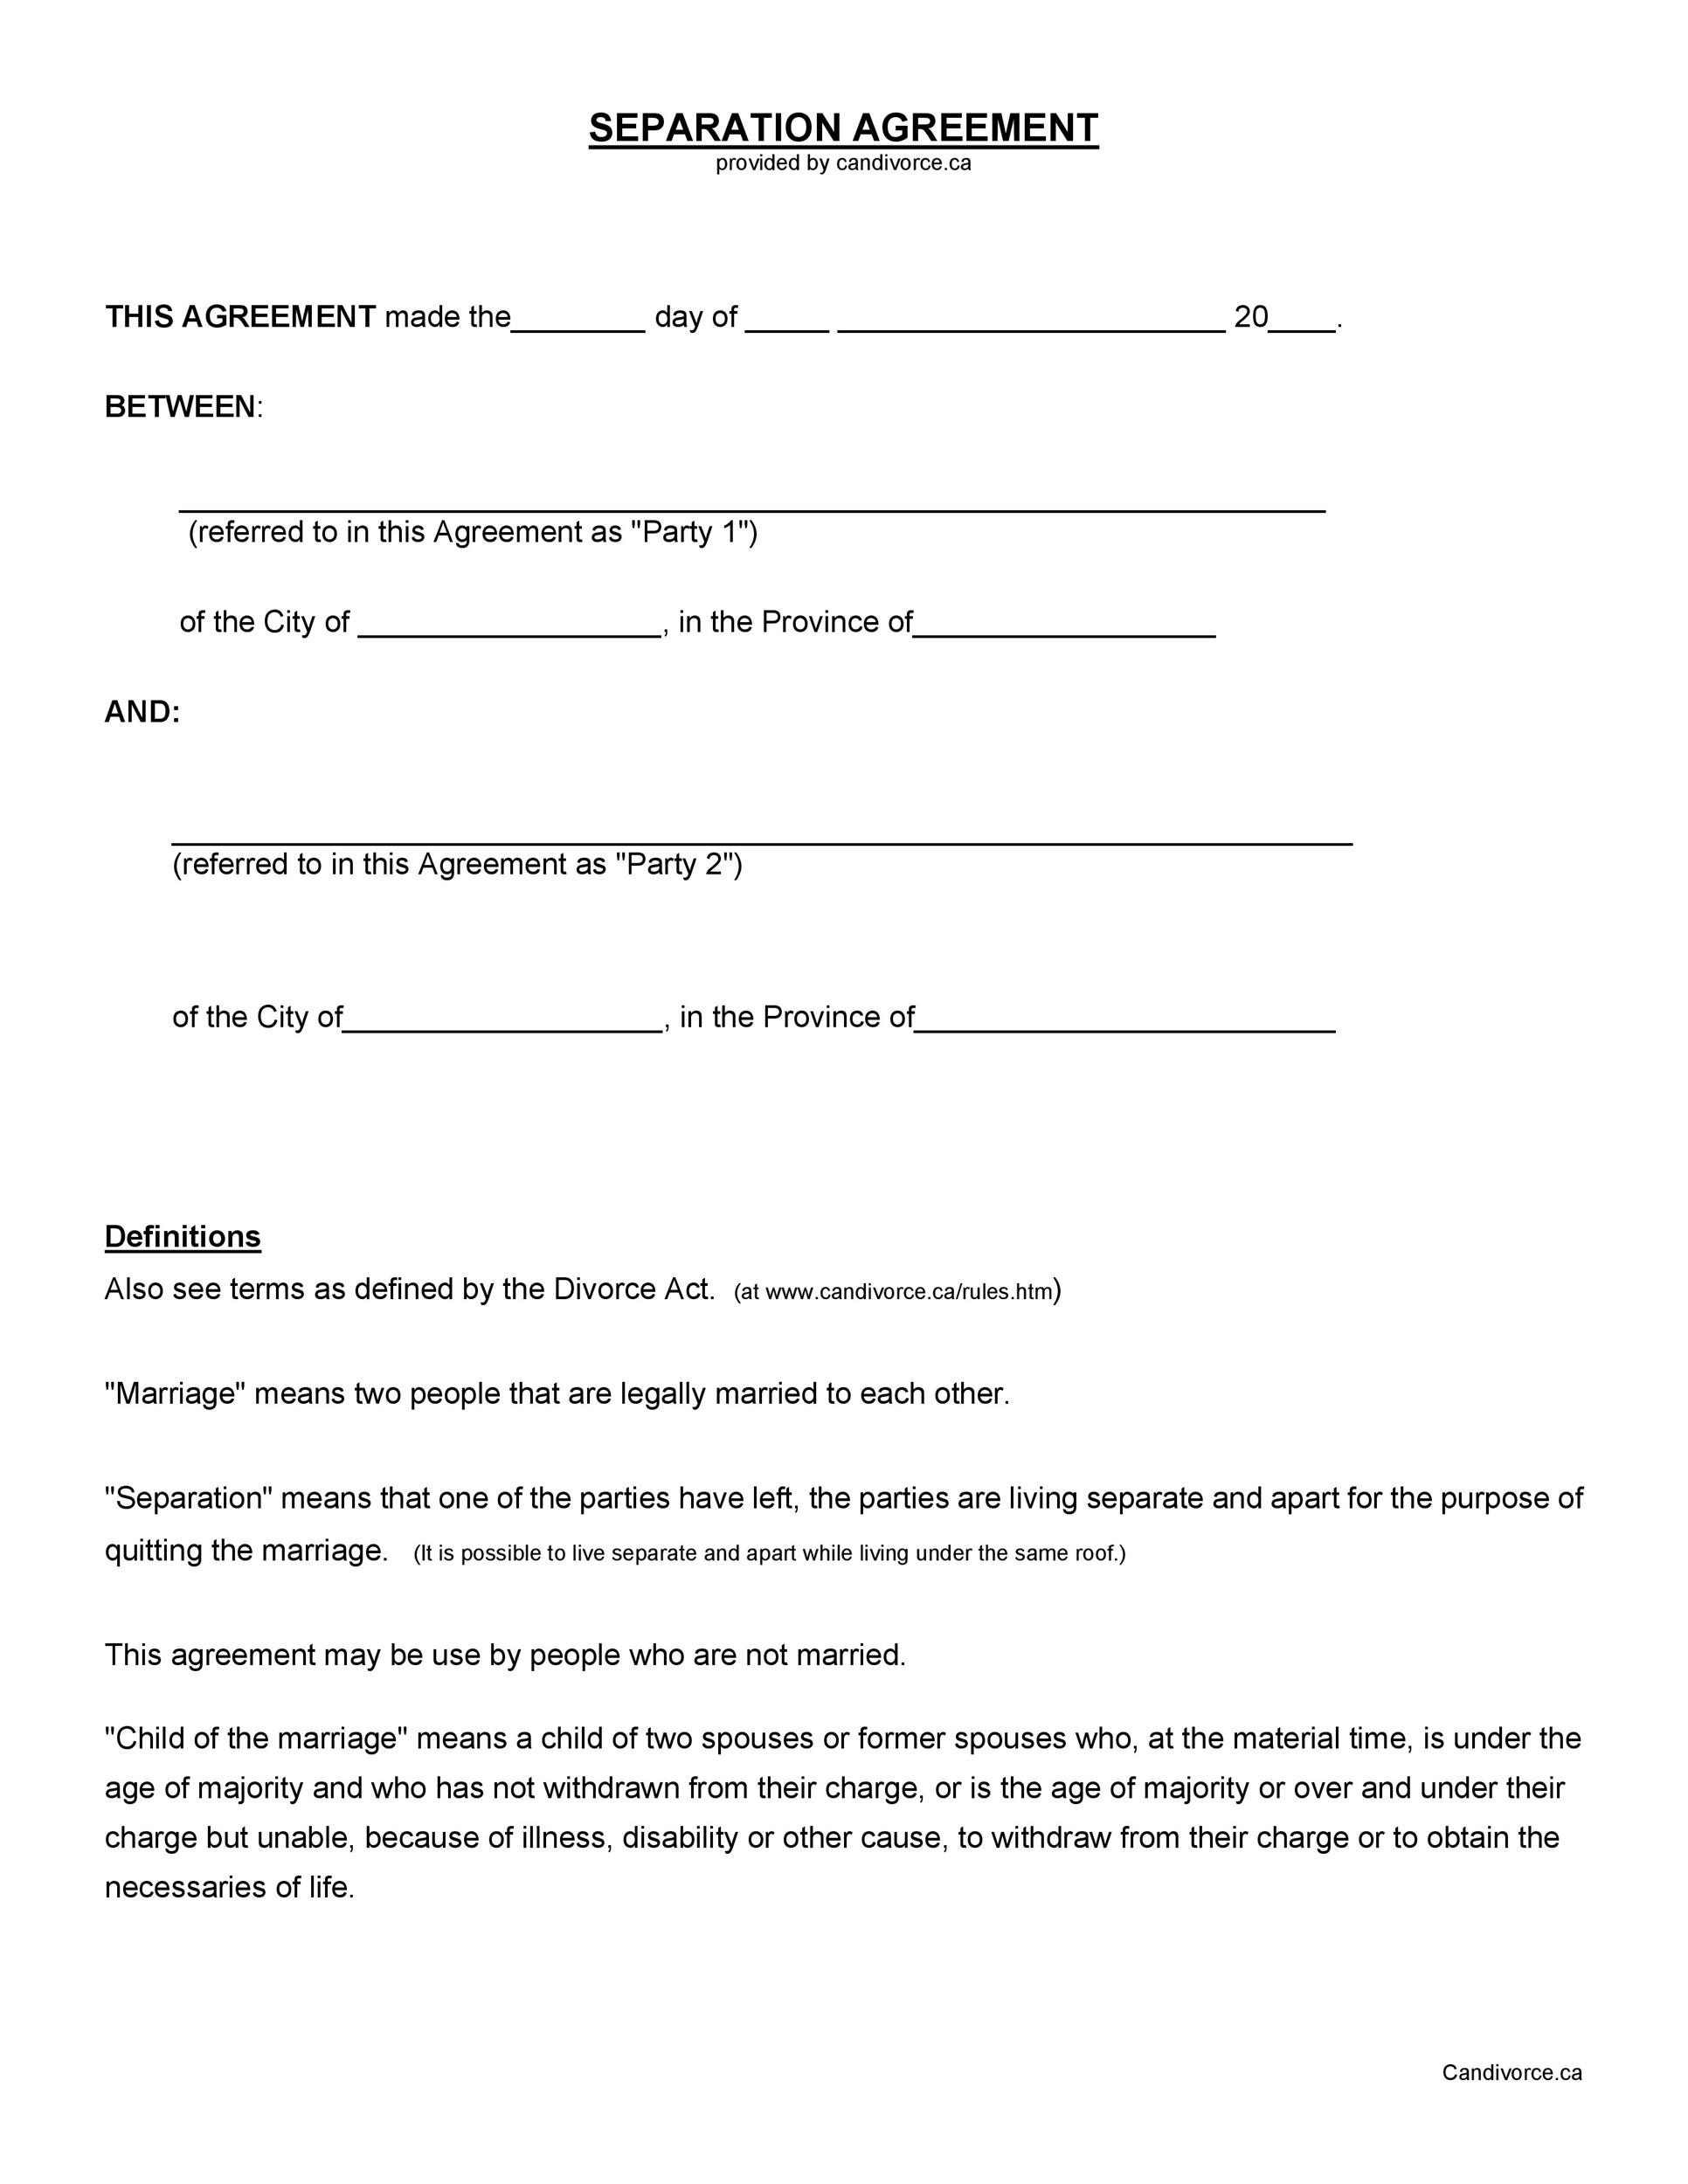 Printable Divorce Papers: 43 Official Separation Agreement Templates / Letters